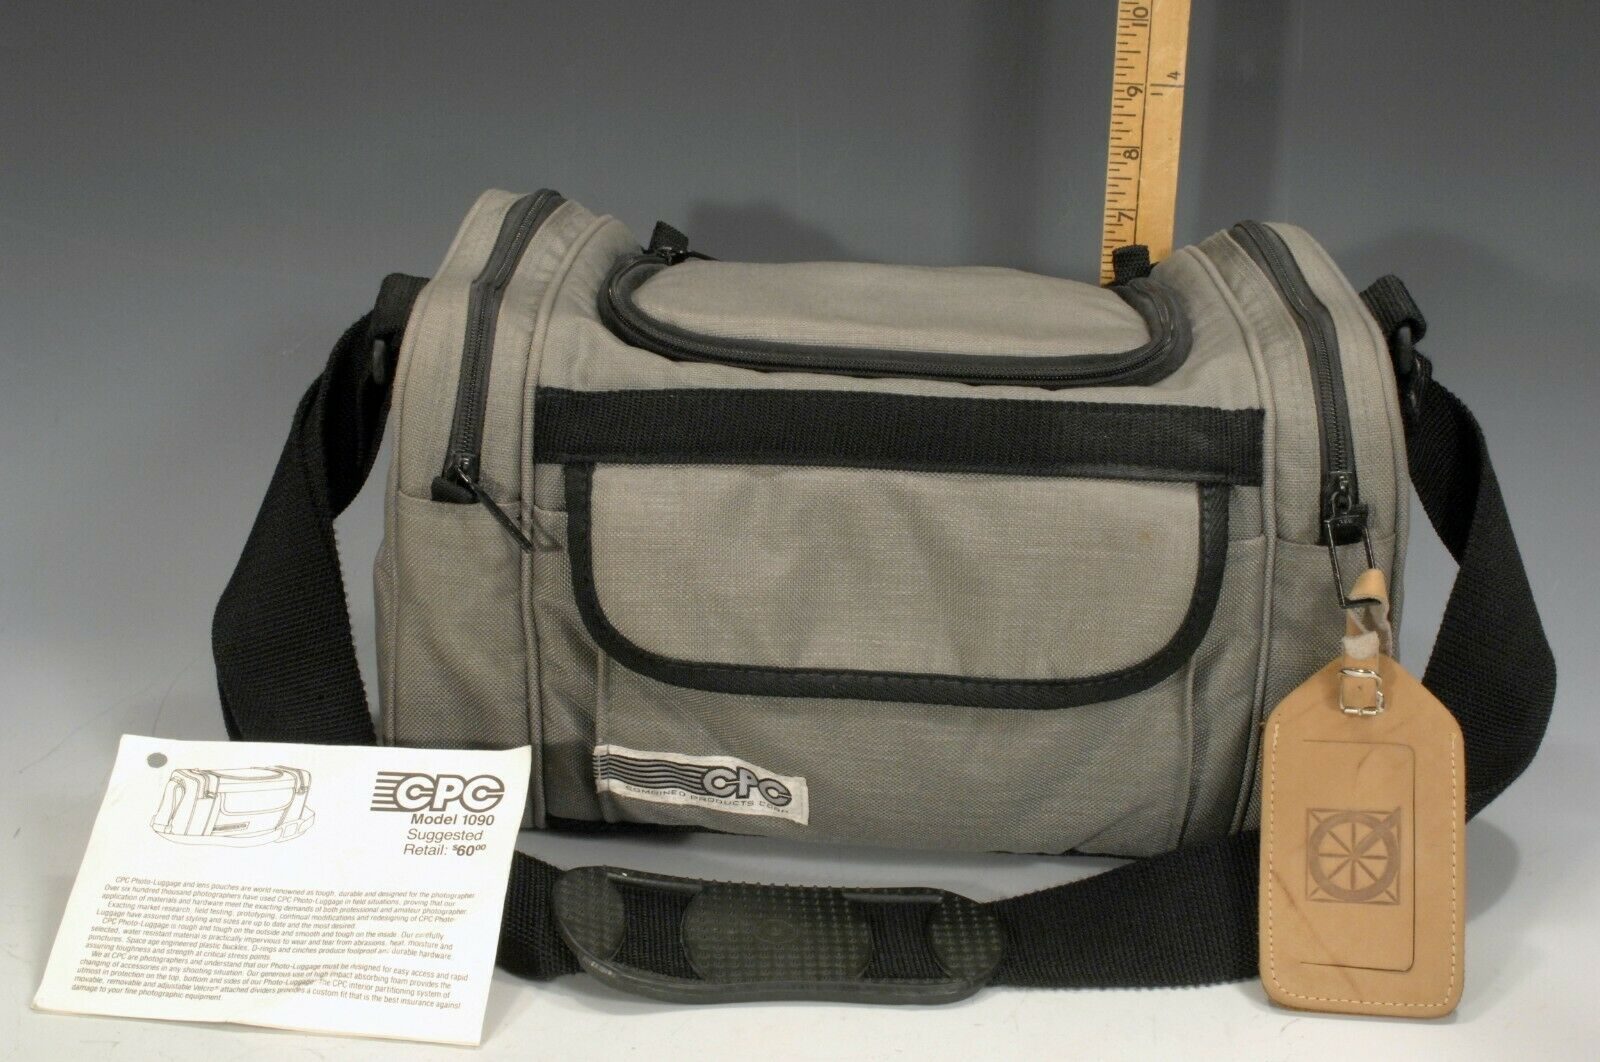 CPC Caribou Series Gray Camera Bag with Adjustable Strap Model 1090 Barely Used